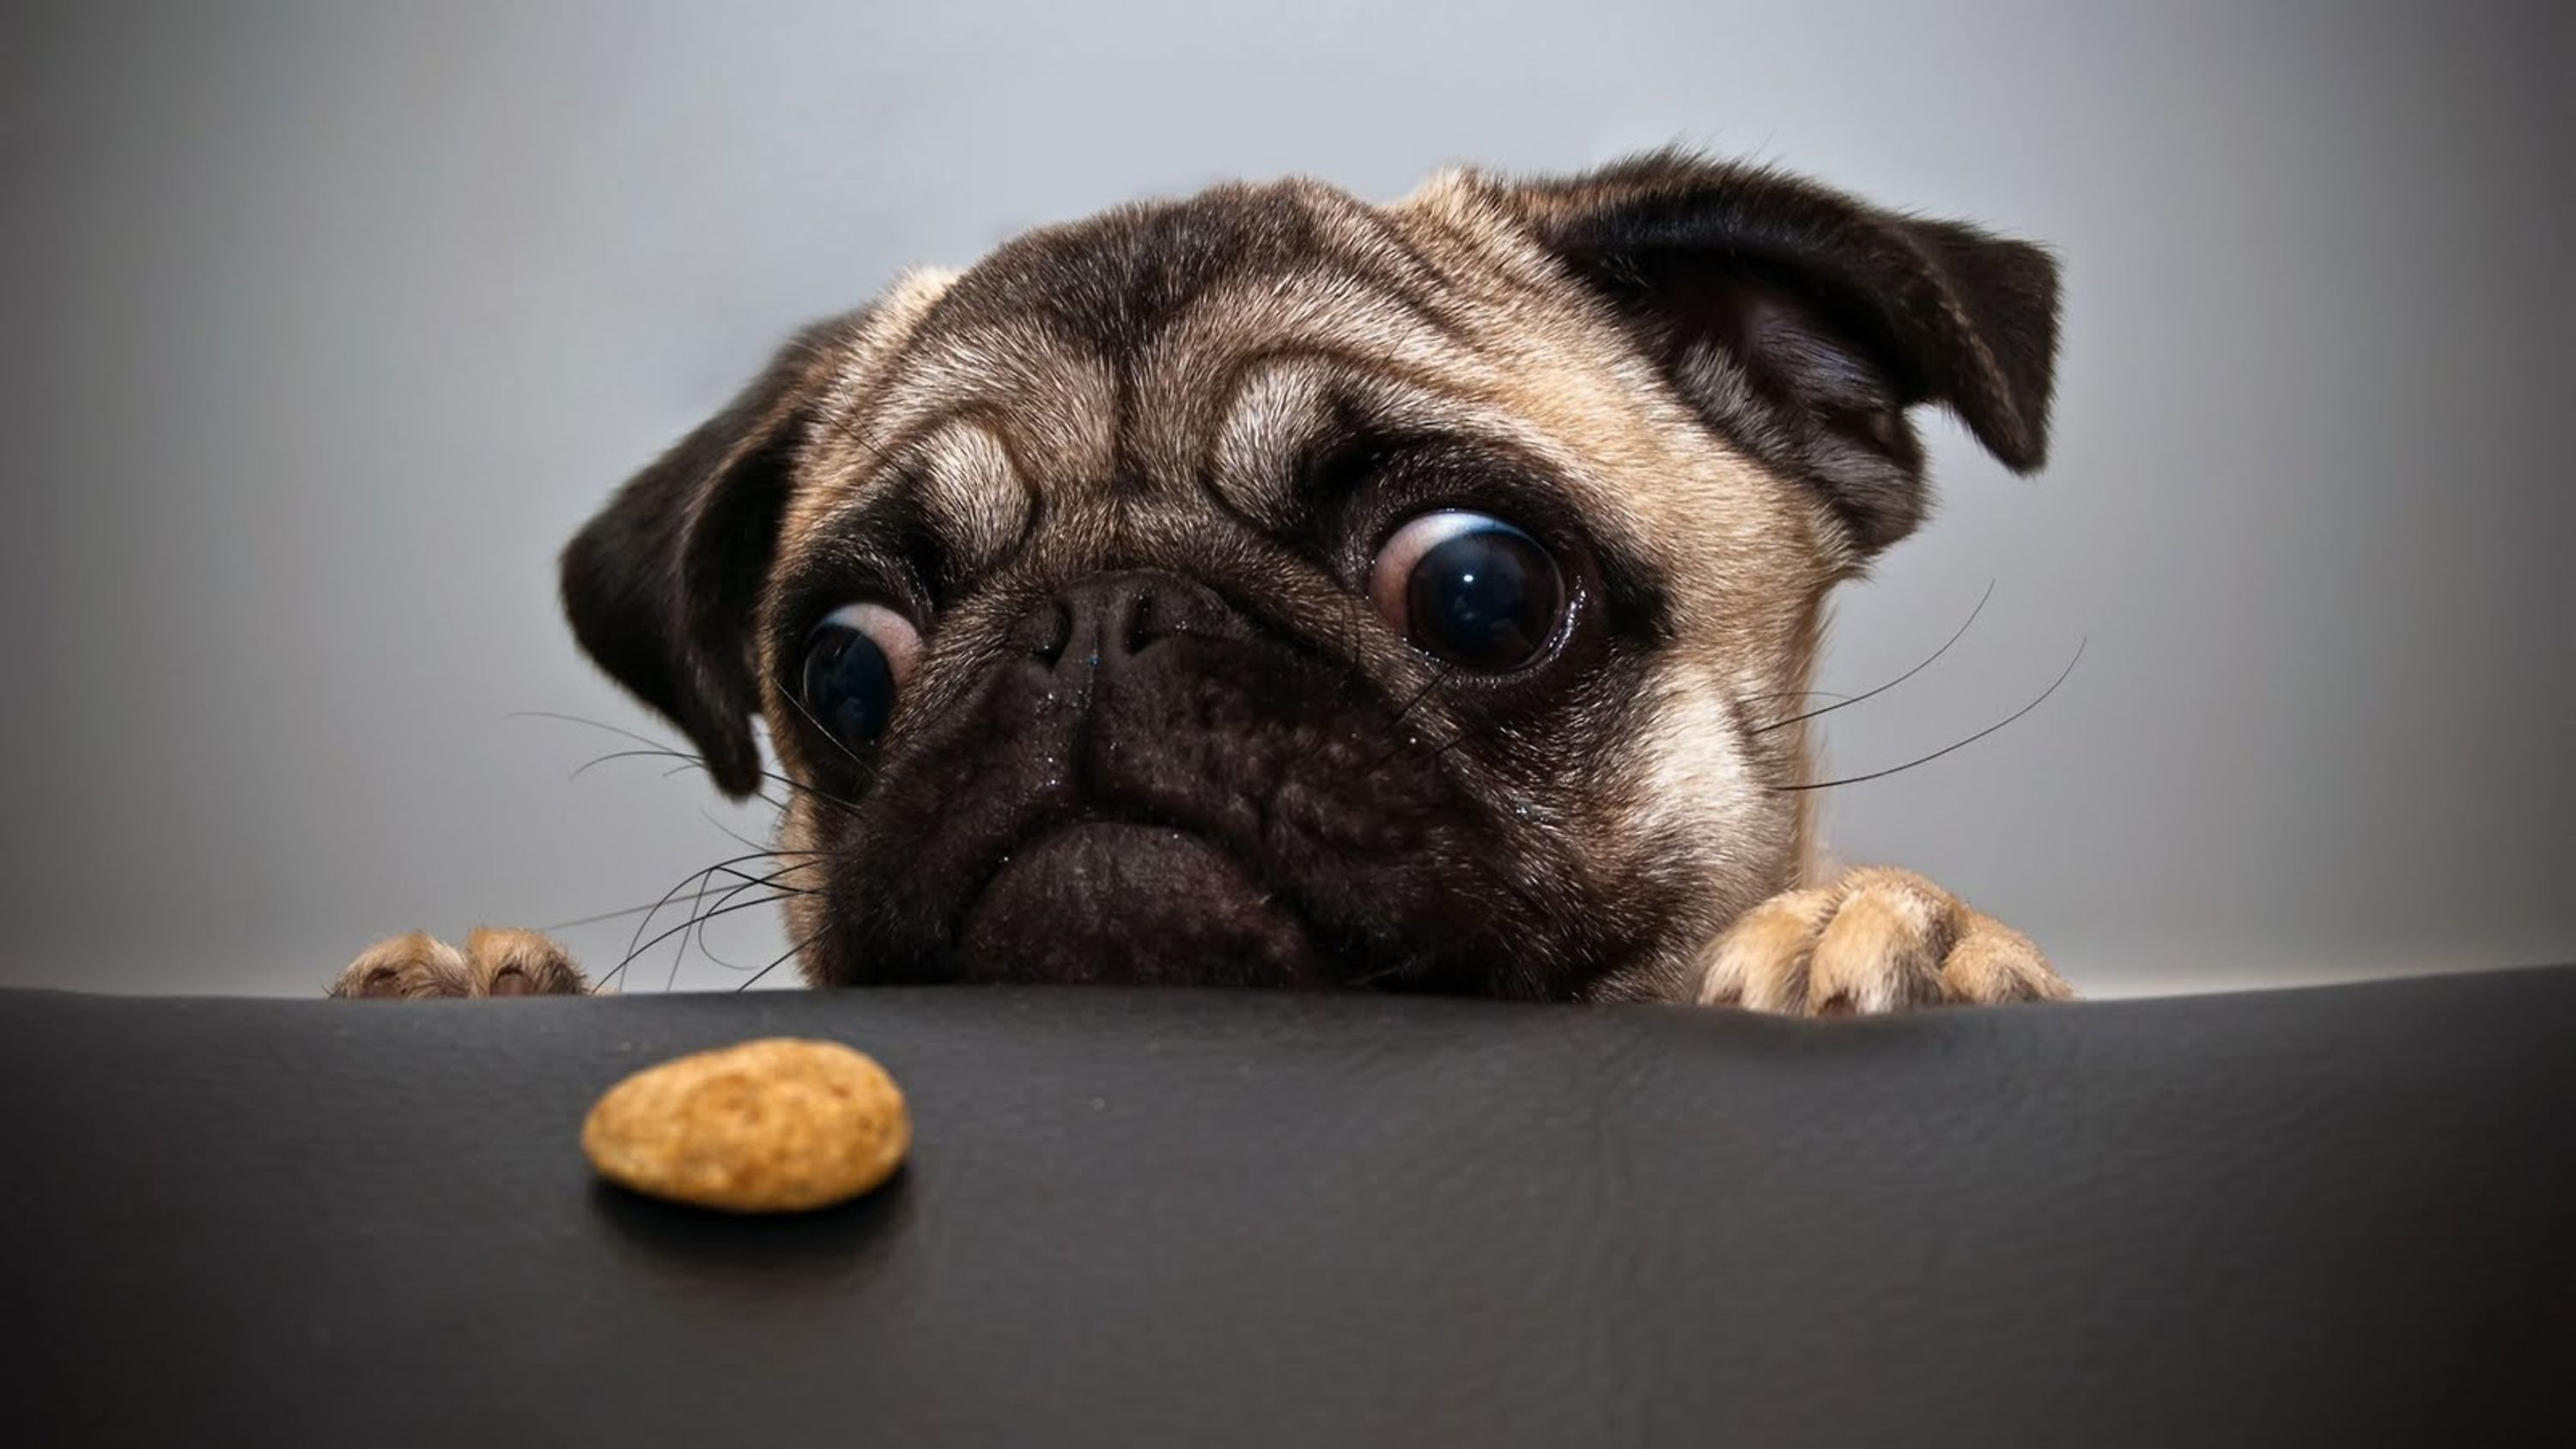 A dog focusing on a dog biscuit lying on a table in front of him